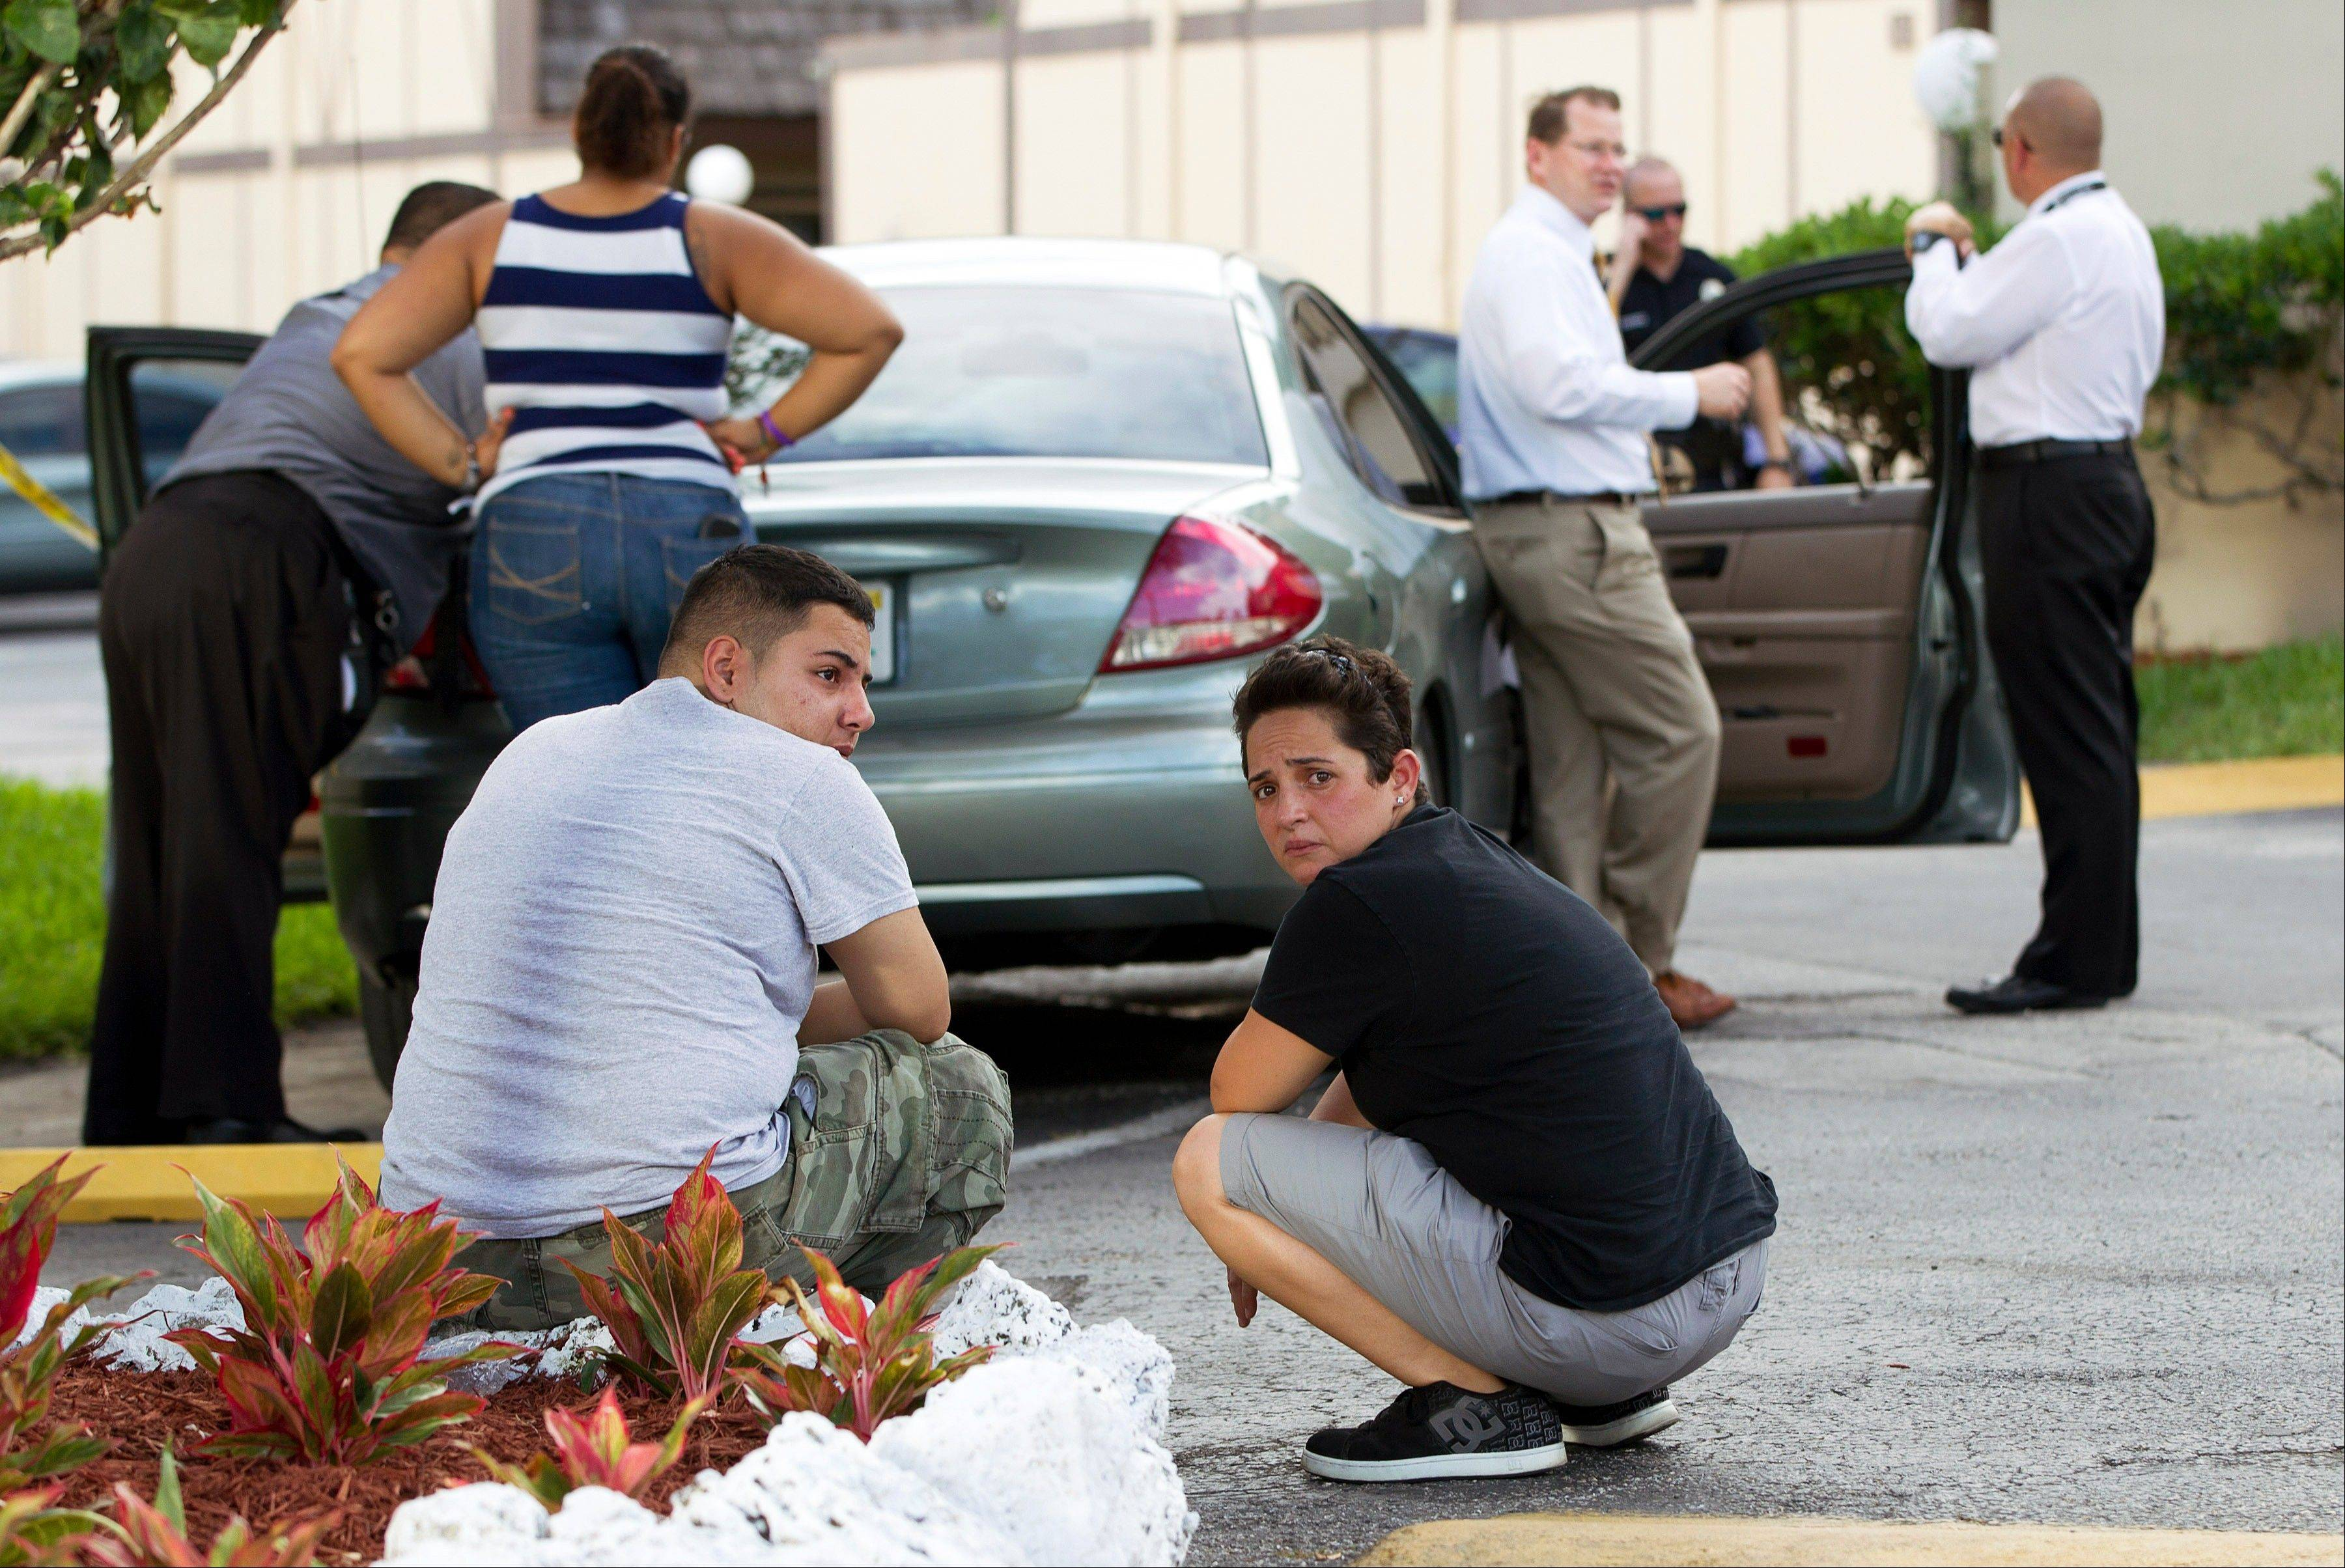 Two people sit behind a police car as Miami police officers investigate a murder on Thursday, Aug. 8, 2013 in Miami. Derek Medina, who authorities say fatally shot his wife ó and apparently then posted a photo of her body on Facebook ó turned himself in to police on Thursday.